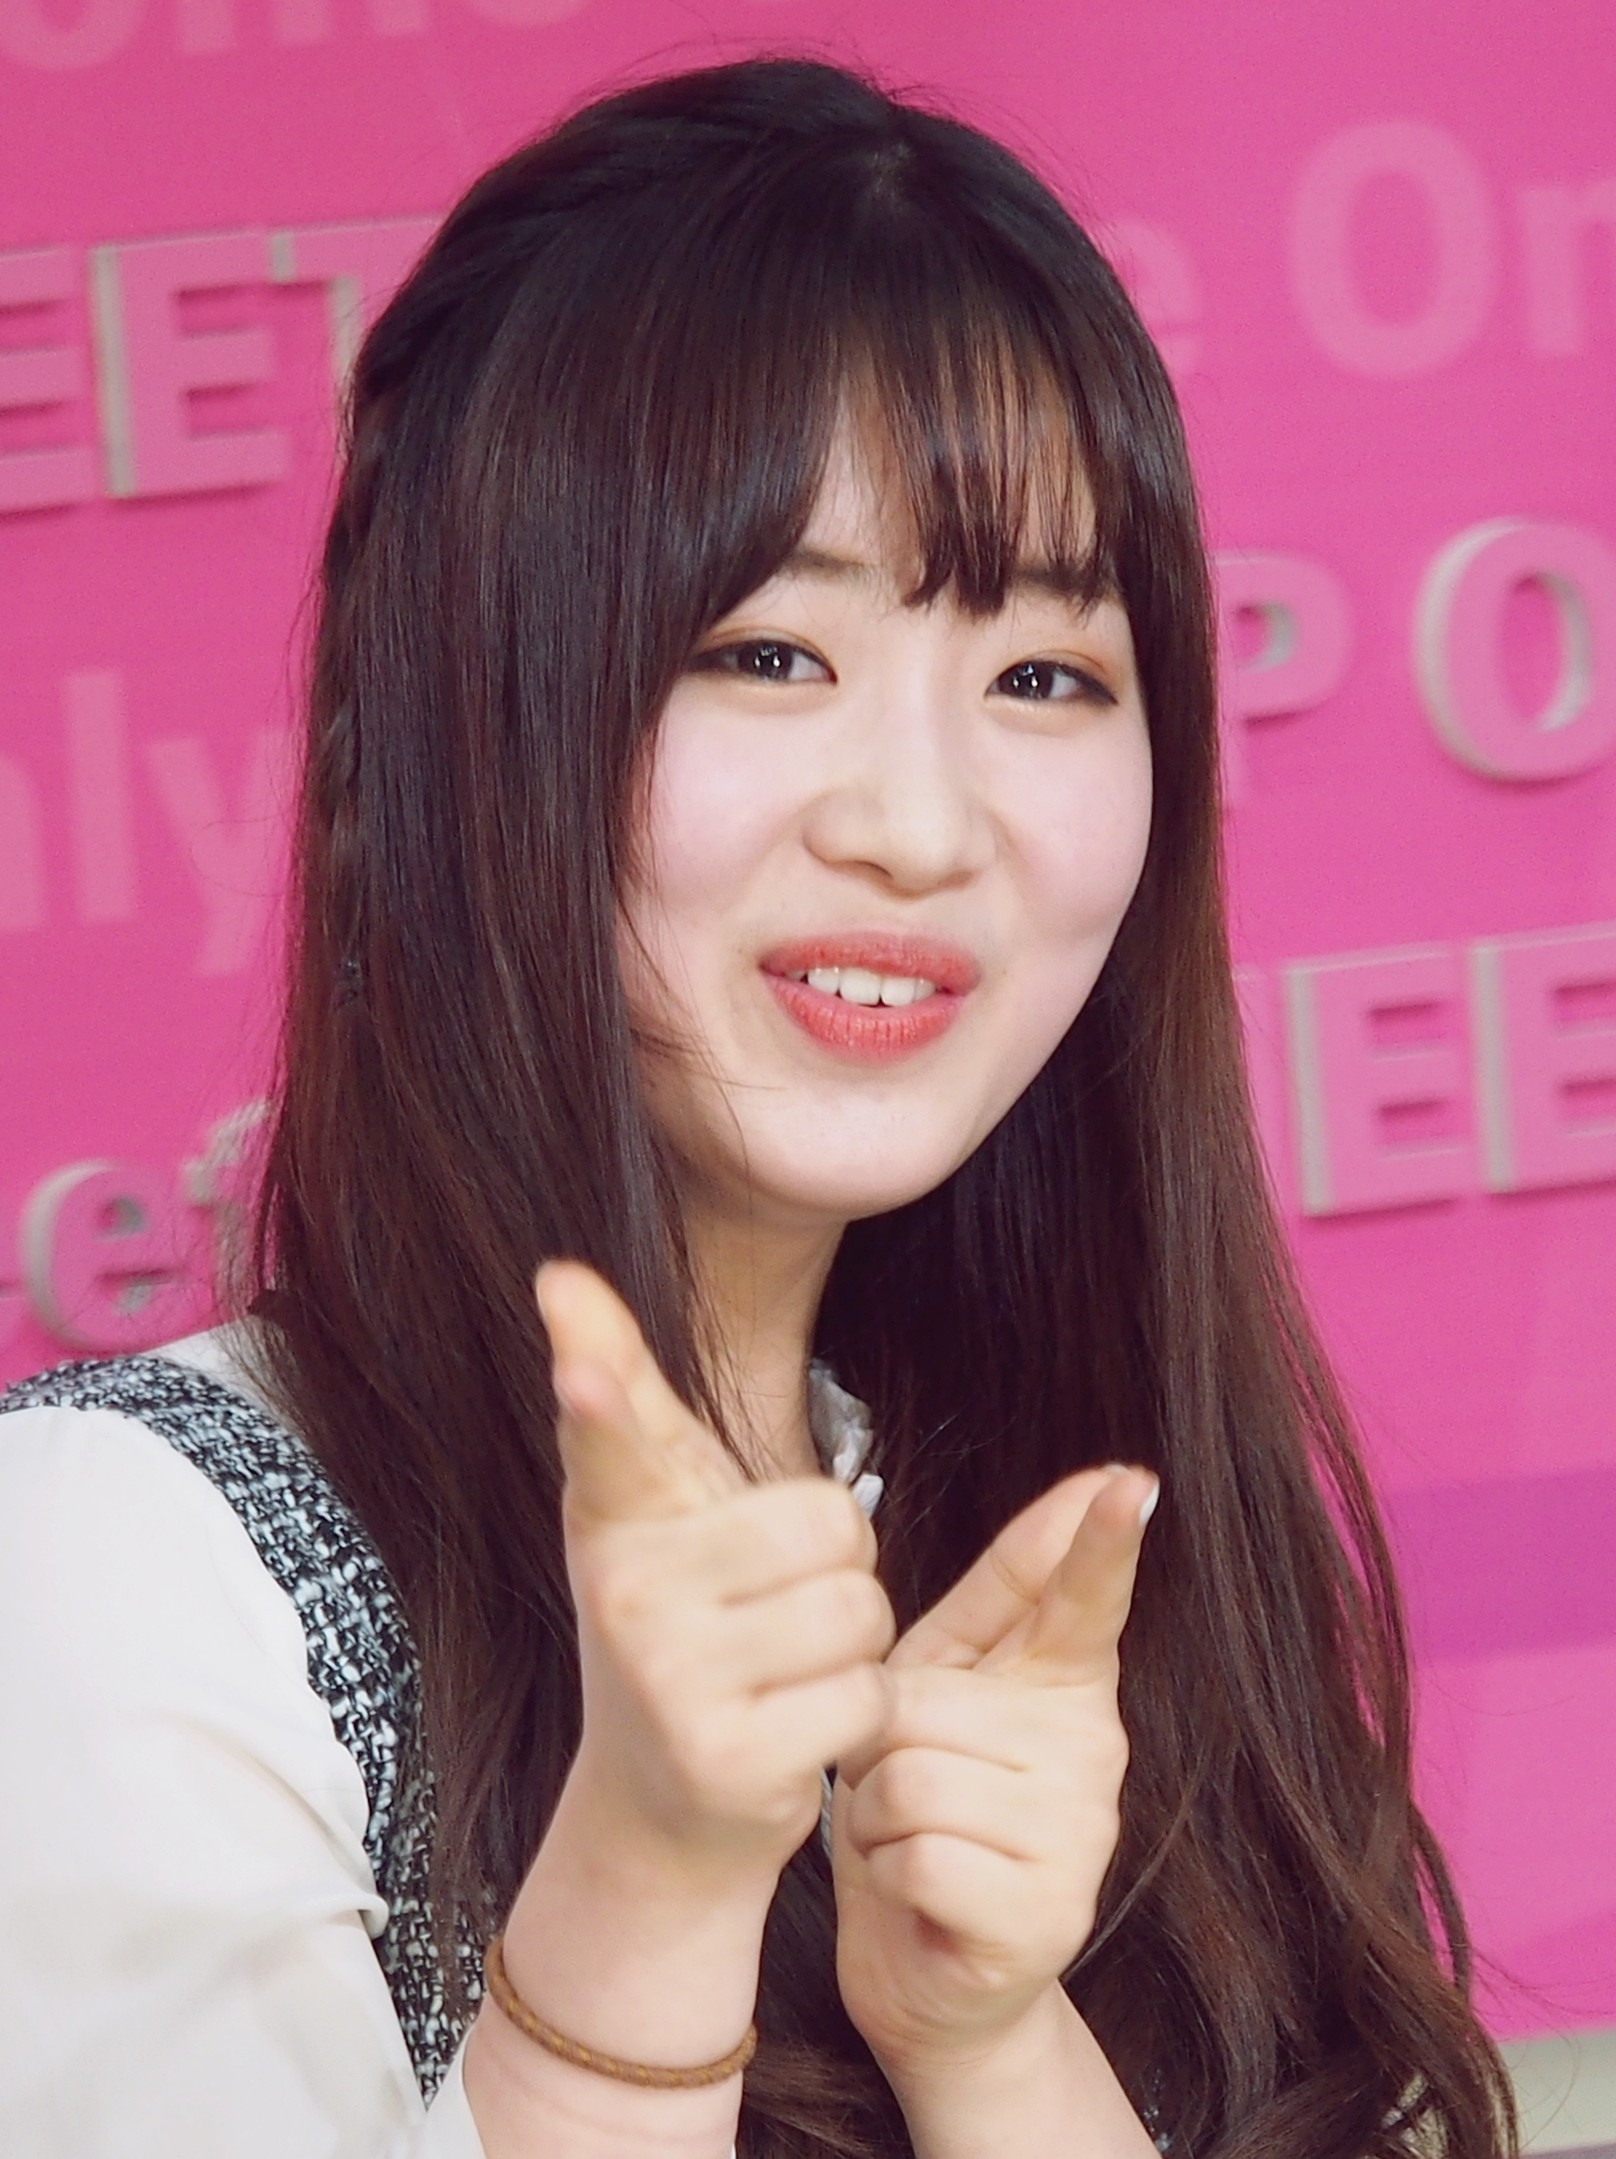 File151214 berry good mnet mwave meet and greet 05g file151214 berry good mnet mwave meet and greet 05g m4hsunfo